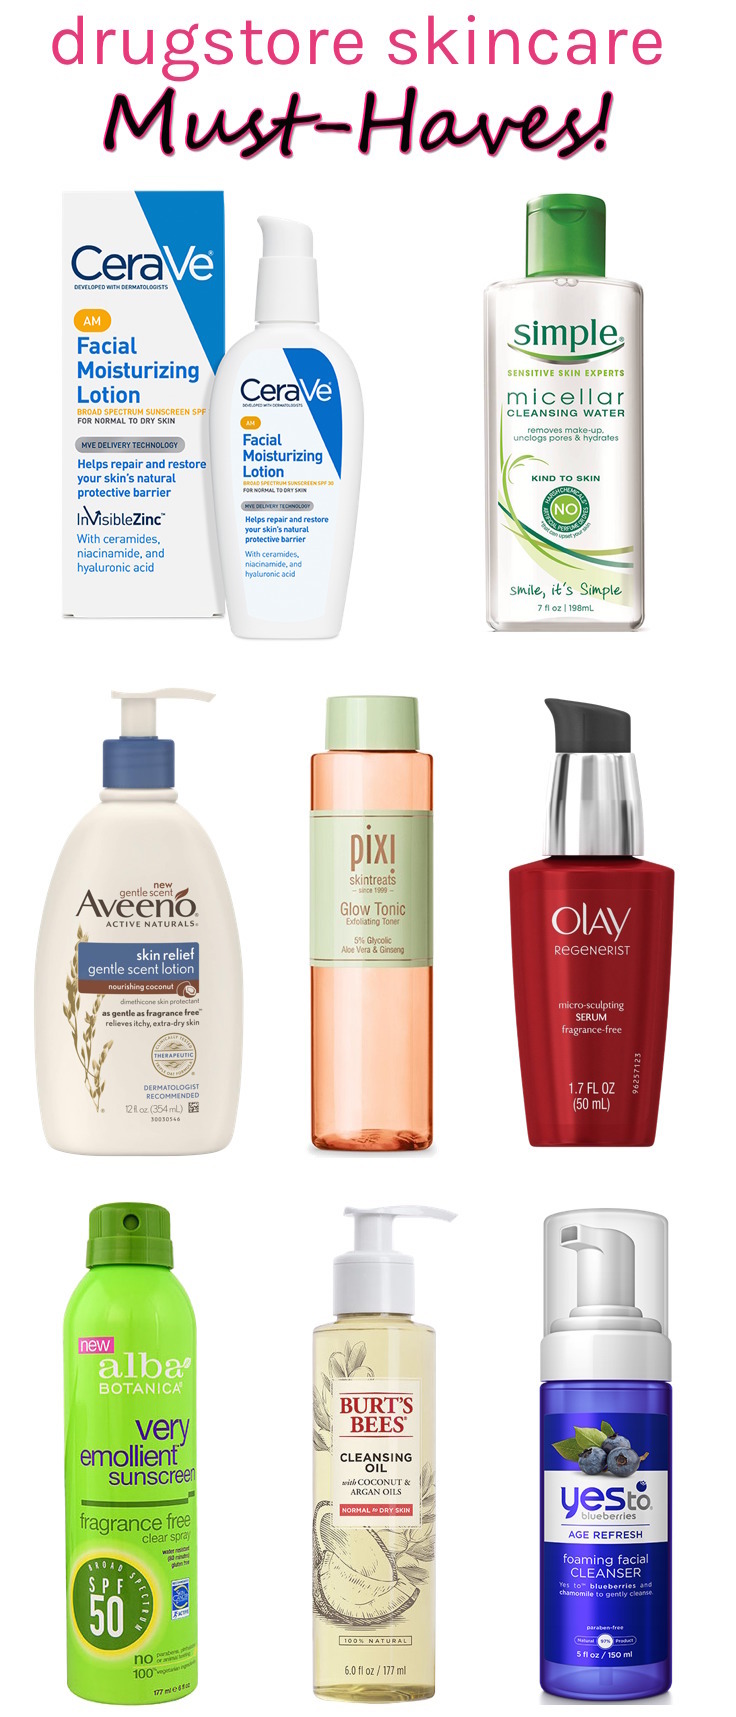 Looking for spectacular skincare finds at affordable prices? Click through for 8 tried & tested drugstore skincare must-haves that clock in at less than $  20!